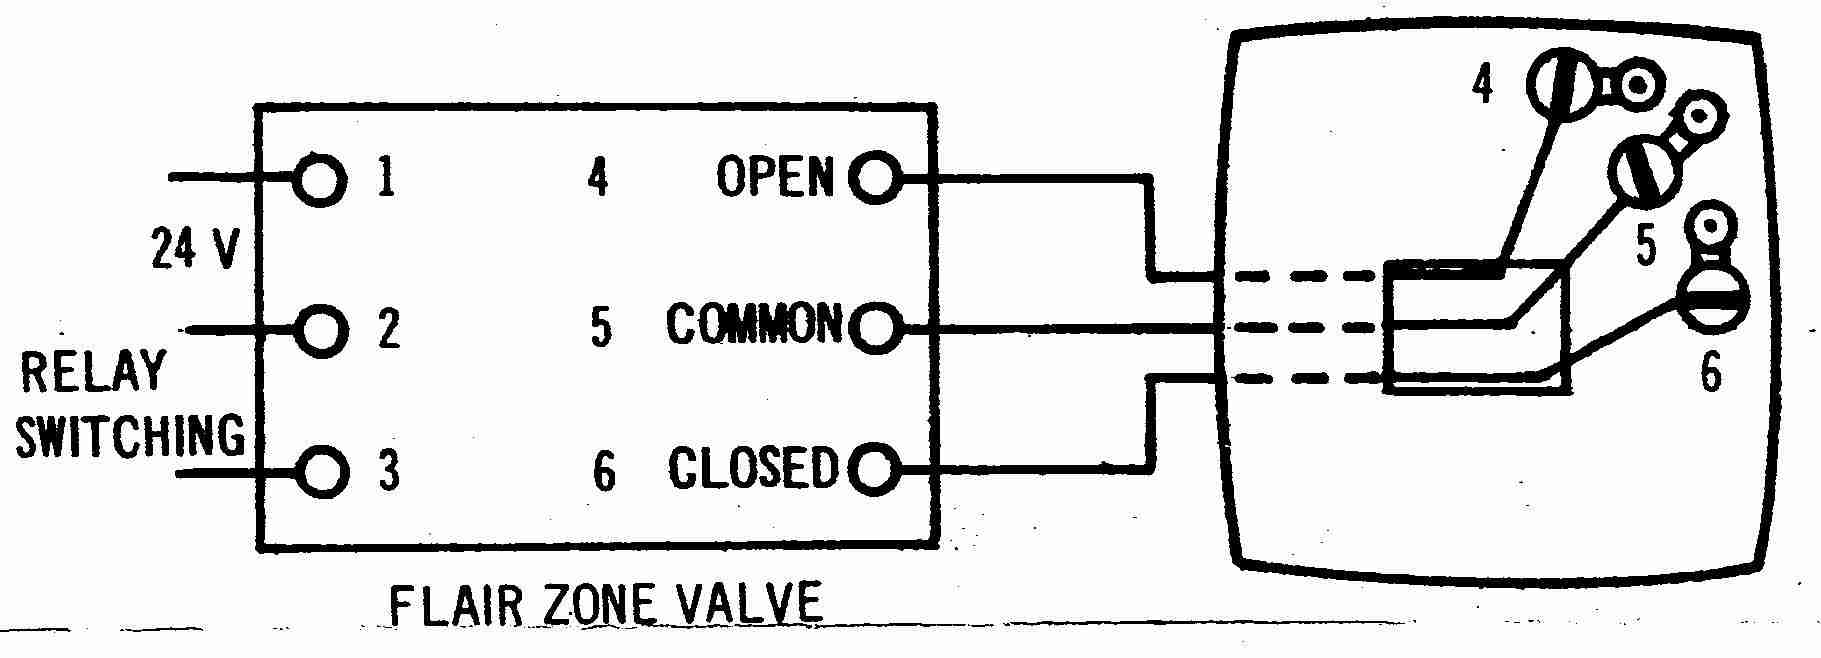 Zone Valve Wiring Installation Instructions Guide To Heating 8 Switch Box Wire Diagram Flair 3 Thermostat Controlling A